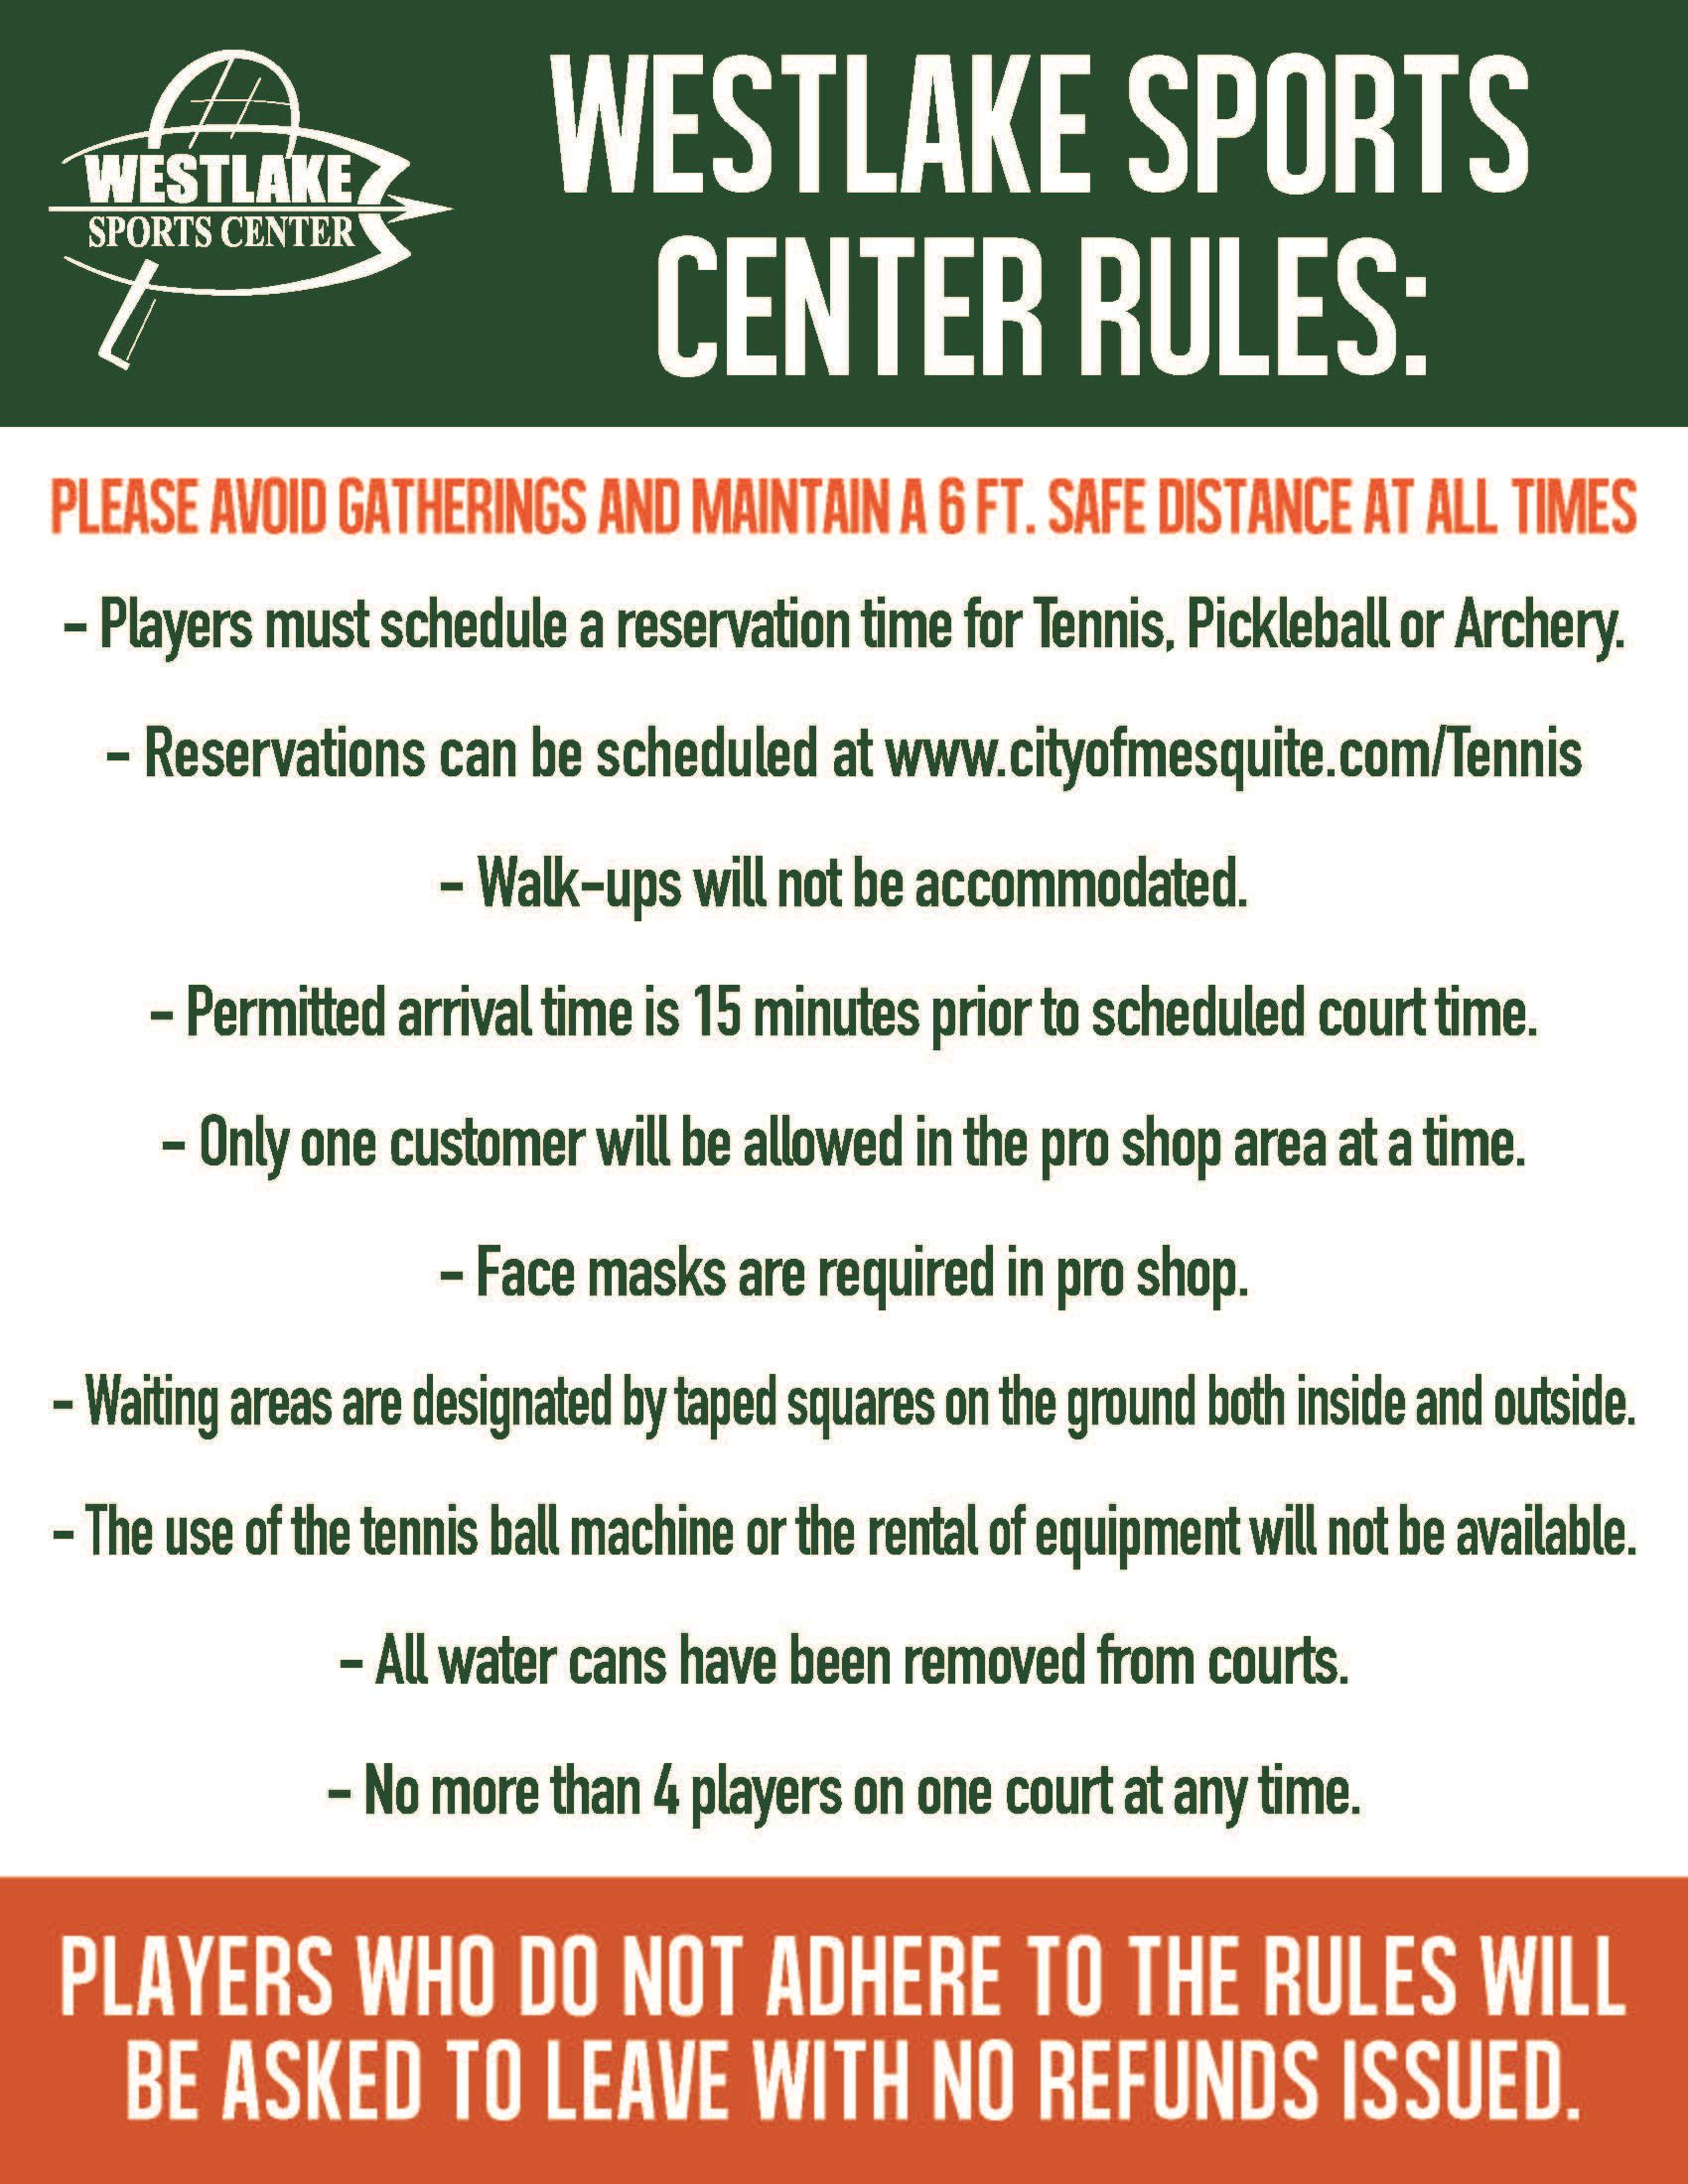 Westlake Sports Center Rules